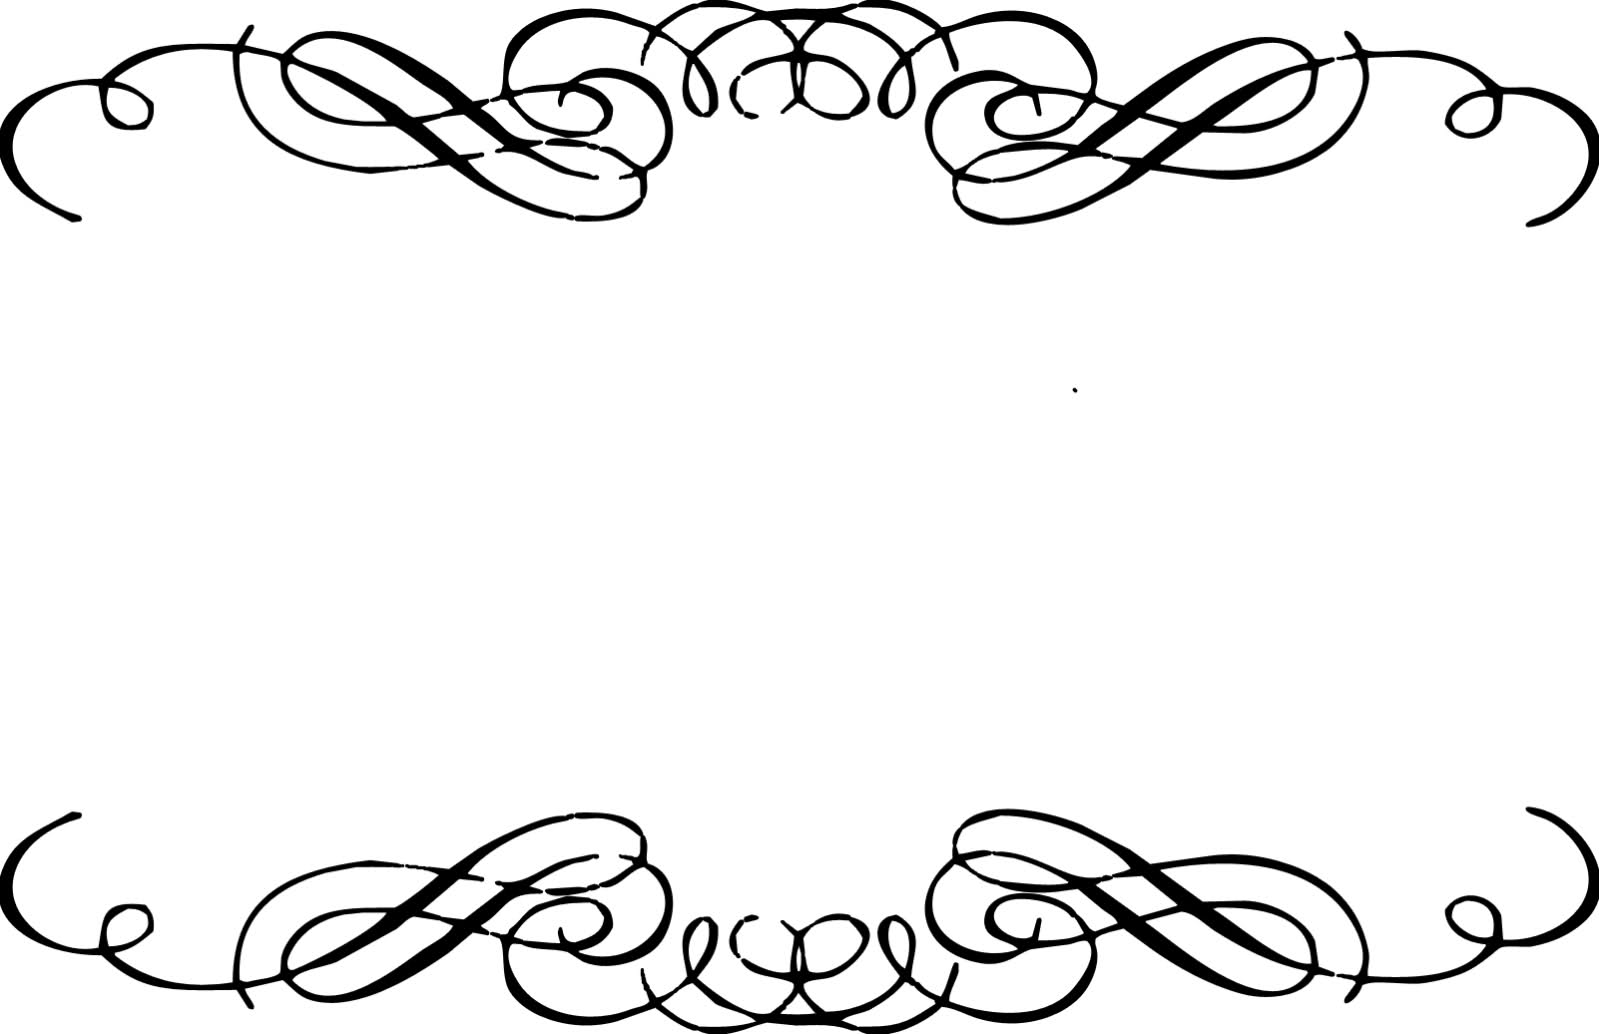 1599x1034 Funeral Clipart Fancy Line Accent